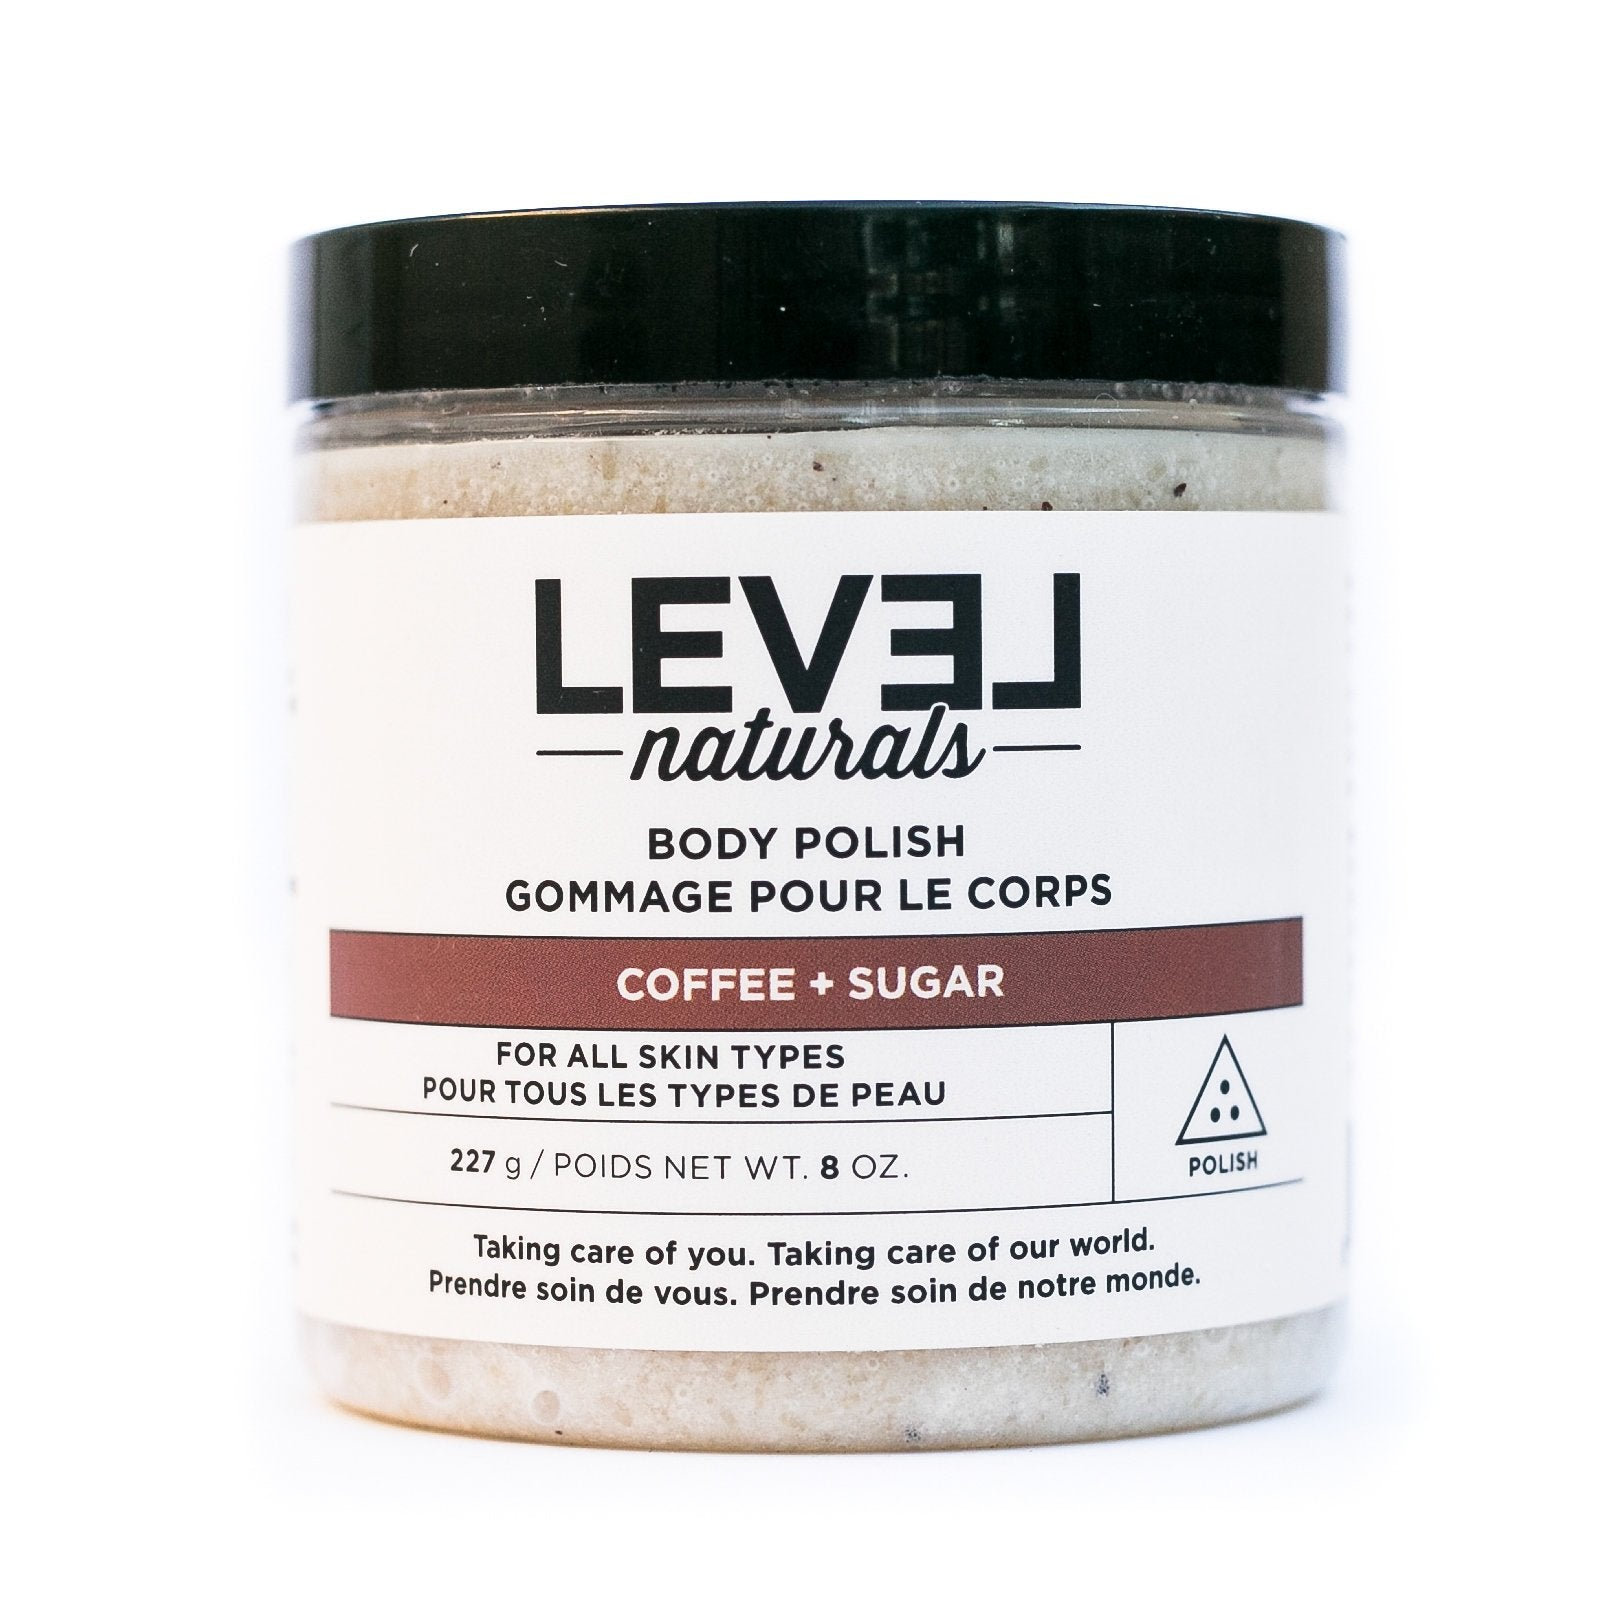 Level Naturals Coffee + Sugar Body Polish